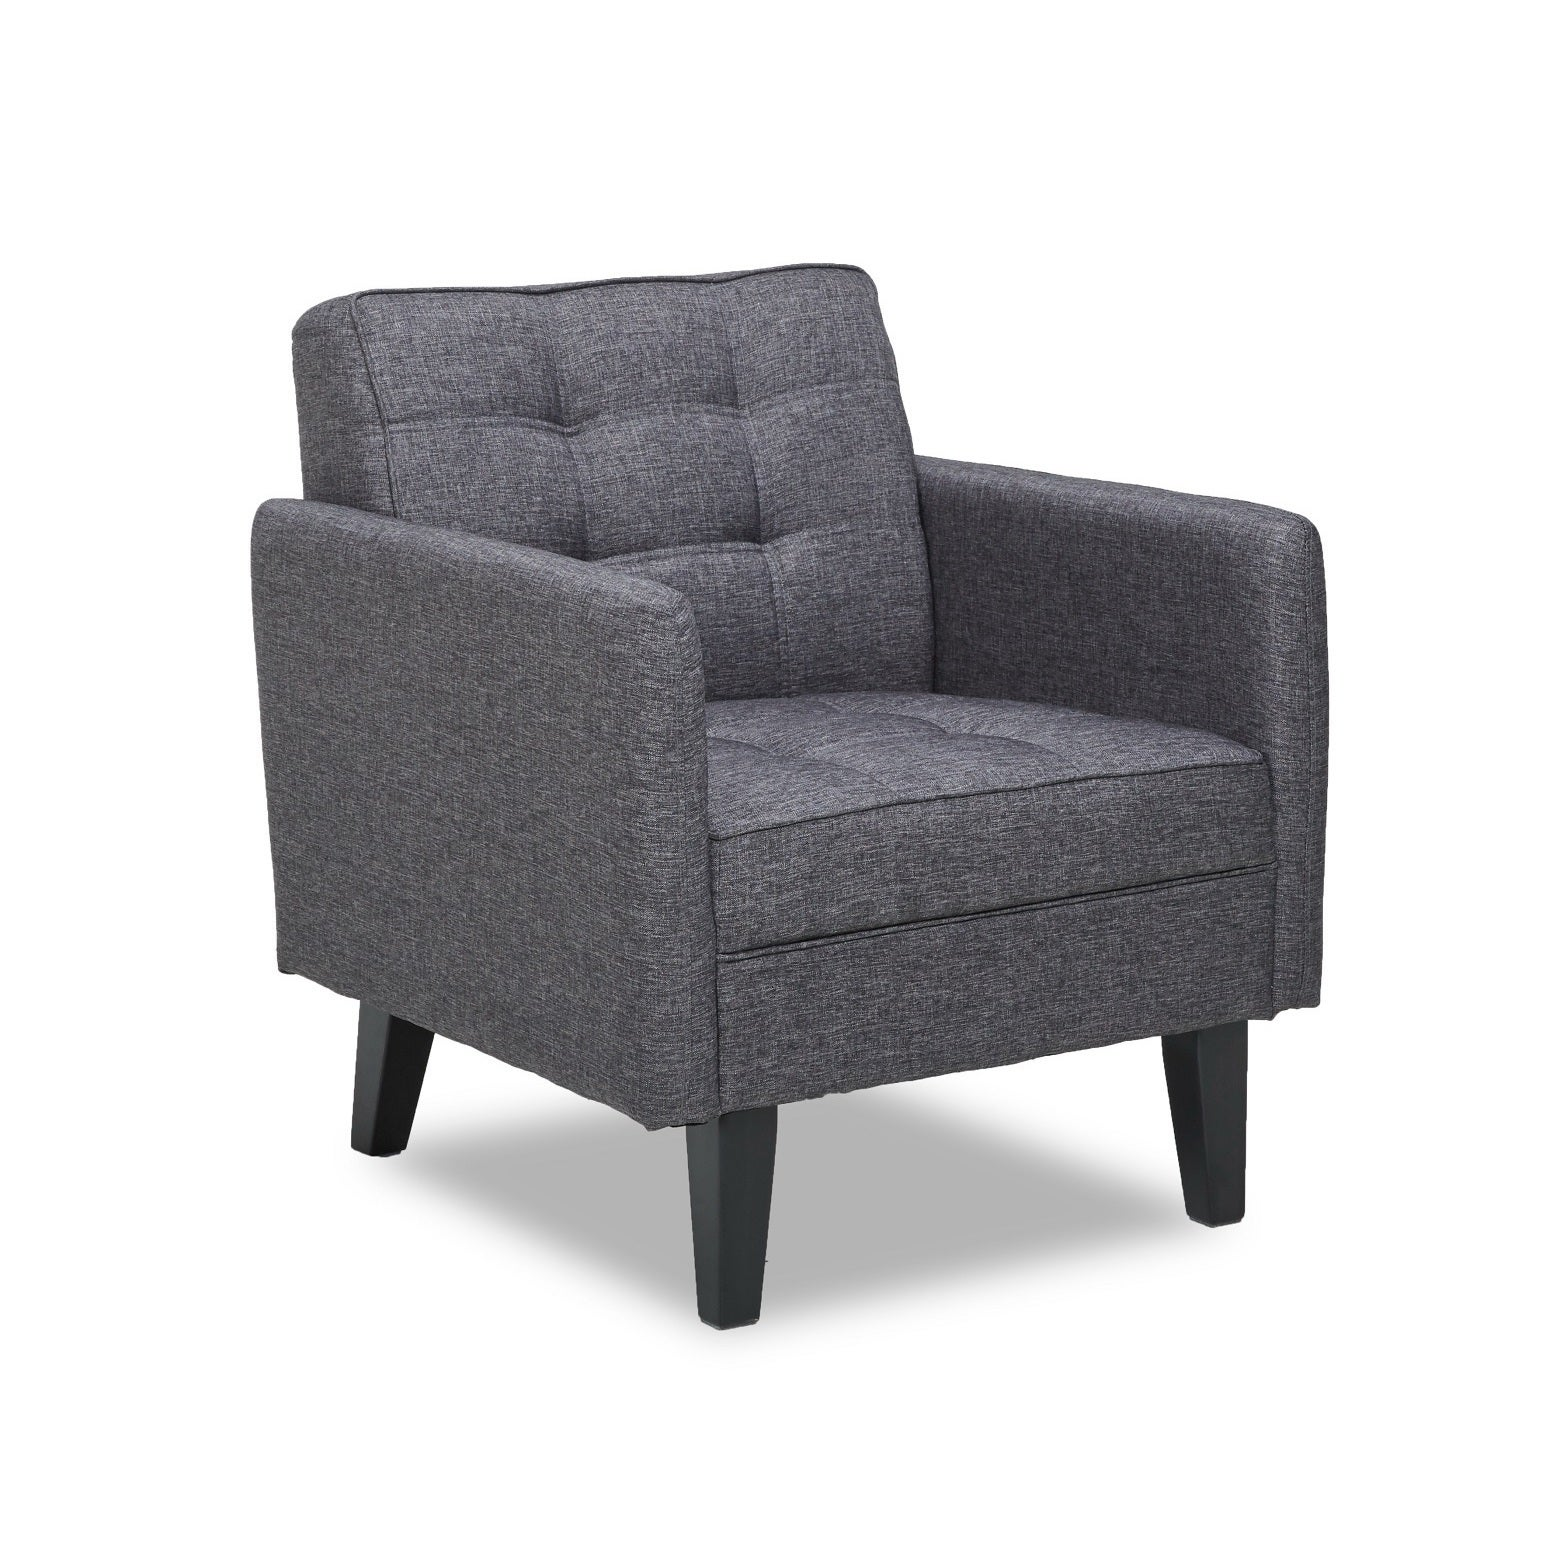 Strange Harper Modern Tufted Grey Accent Chair Caraccident5 Cool Chair Designs And Ideas Caraccident5Info